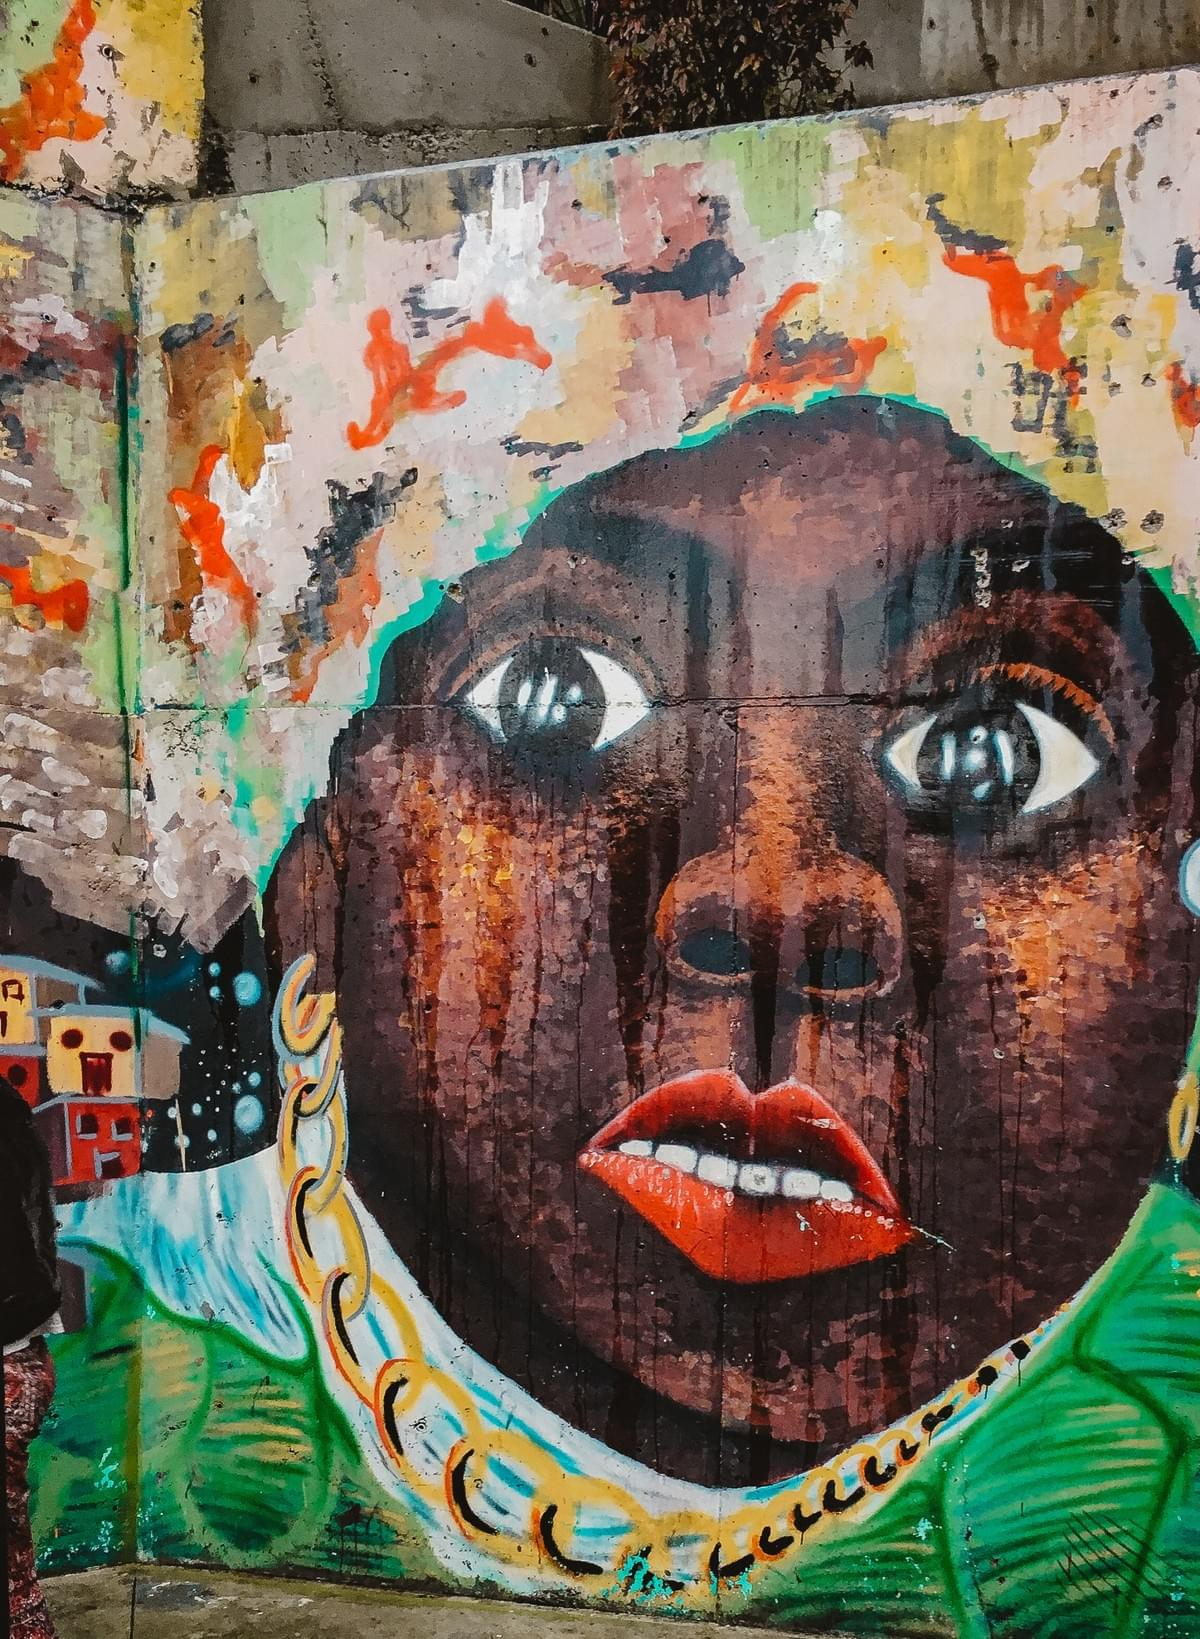 Street art of black woman with red lips and white teeth, gold chain and head wrap in comuna 13 Commune 13 San Javier